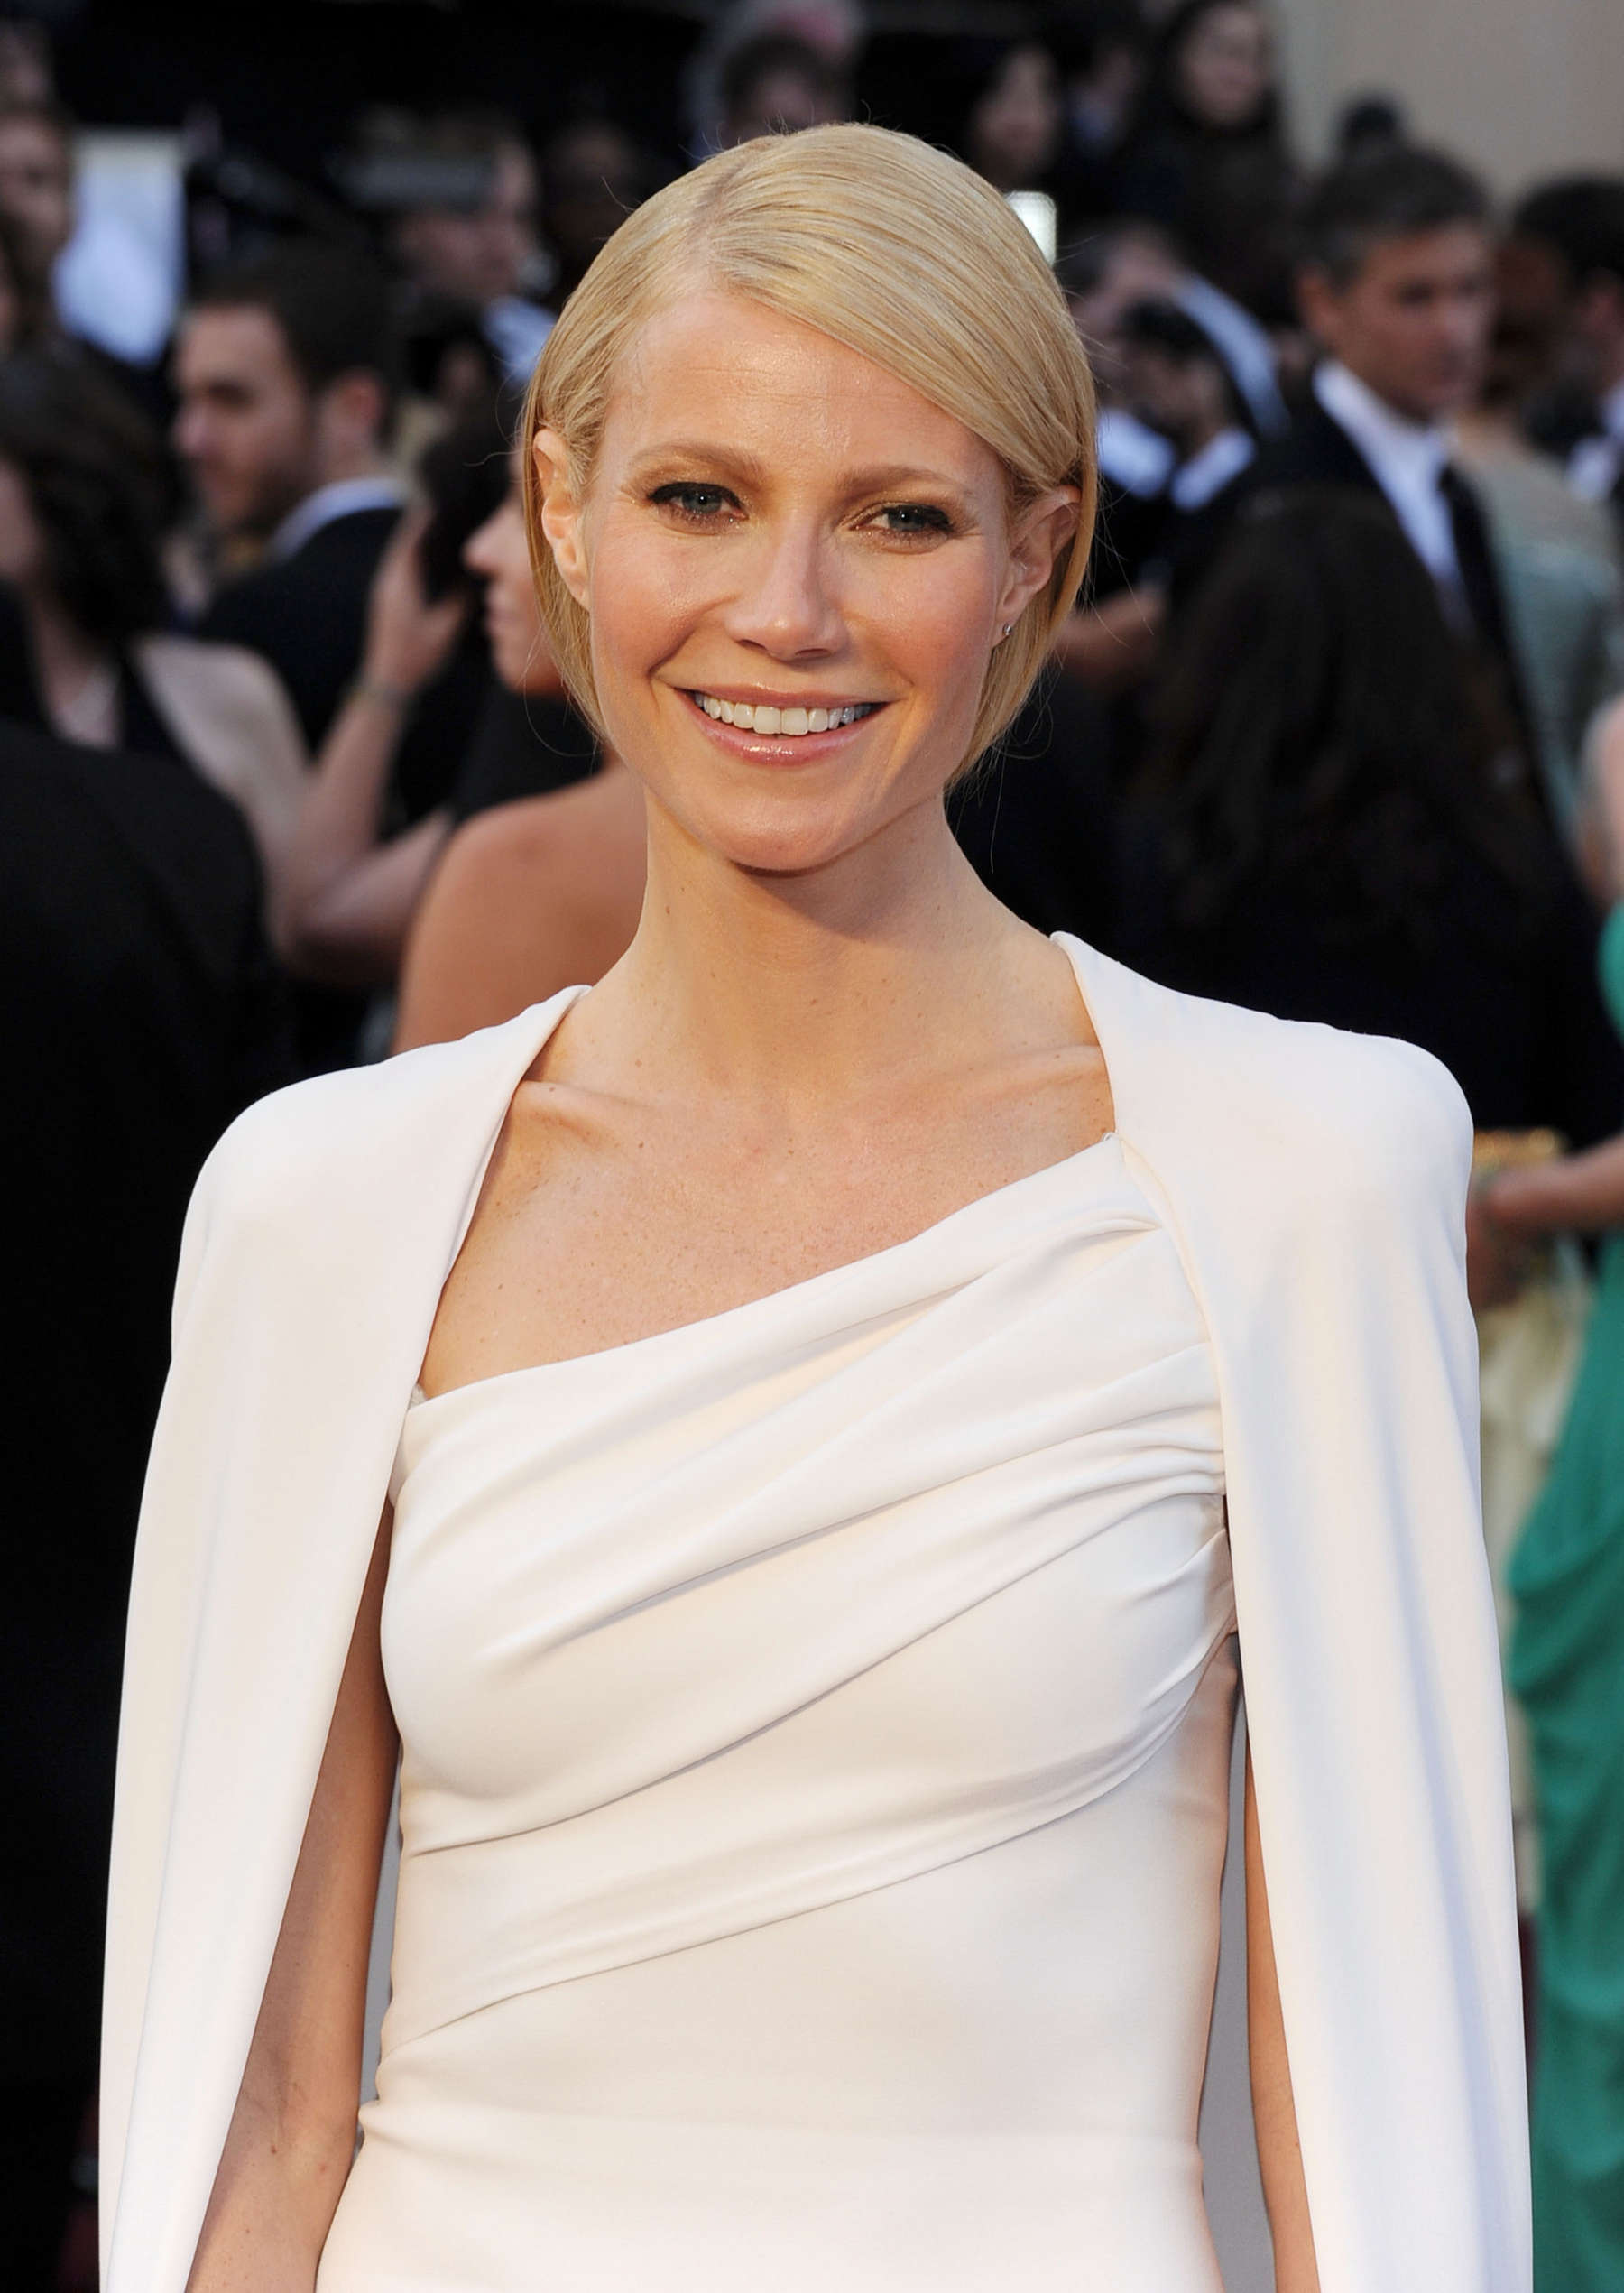 Gwyneth Paltrow opens up about her Oscars fashion disasters Gwyneth Paltrow opens up about her Oscars fashion disasters new foto